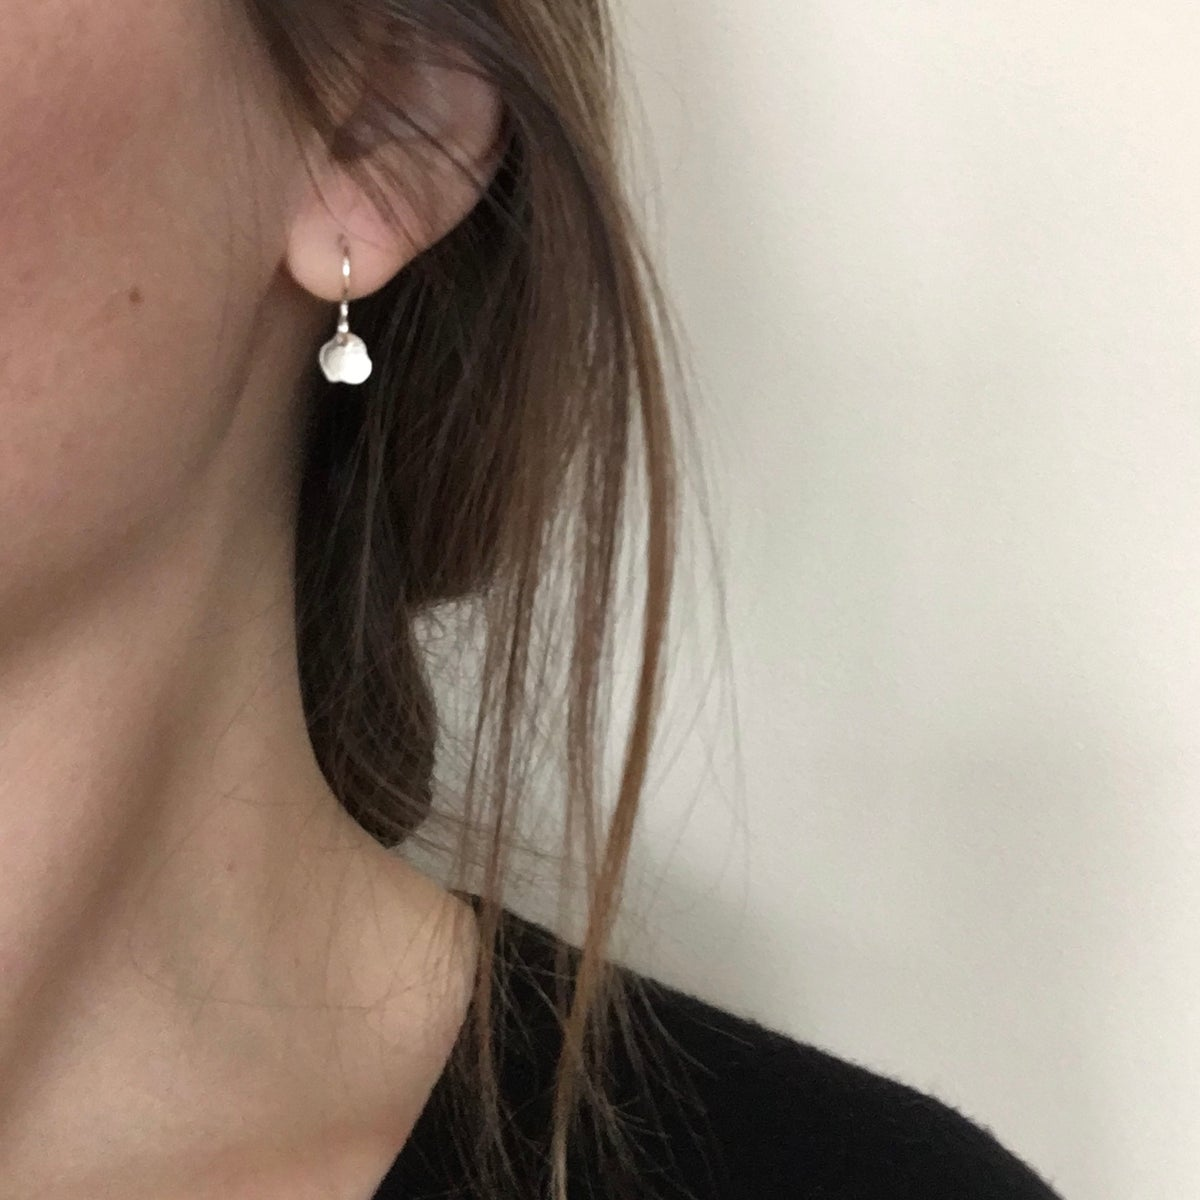 Image of pica earring